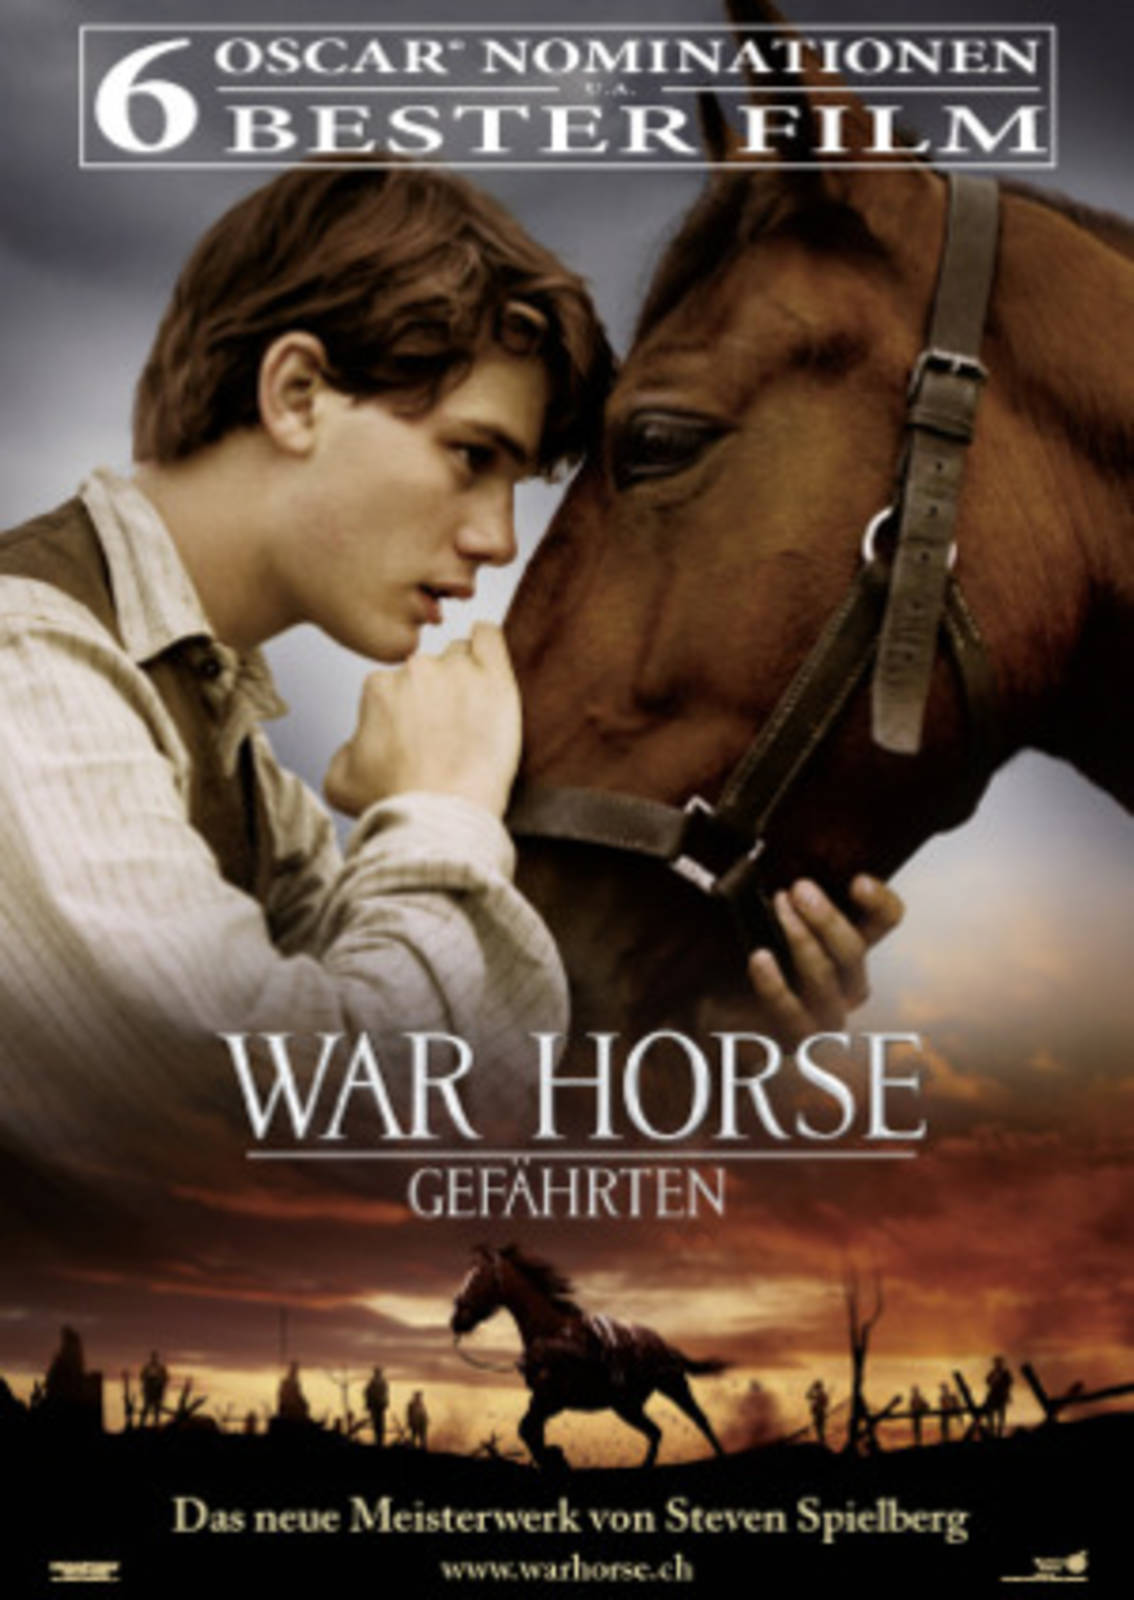 movie review of war horse